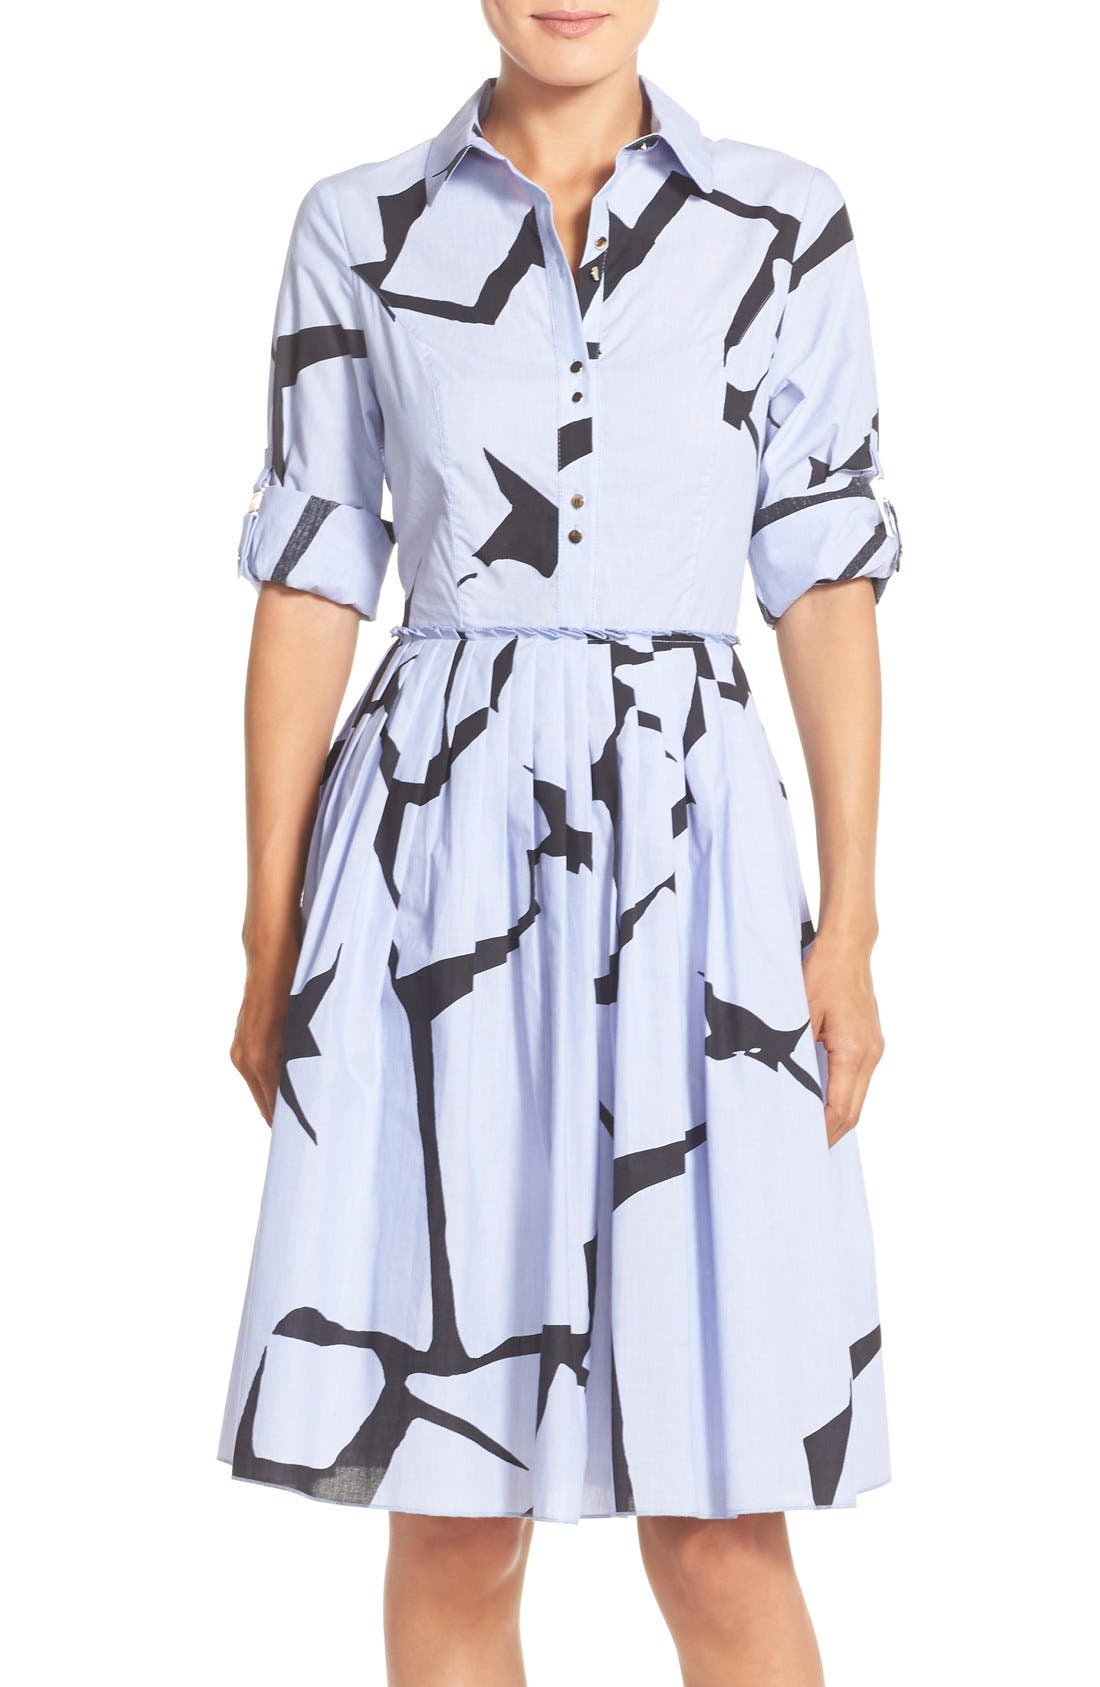 Alternate Image 1 Selected - Ivanka Trump Print Cotton Fit & Flare Shirtdress